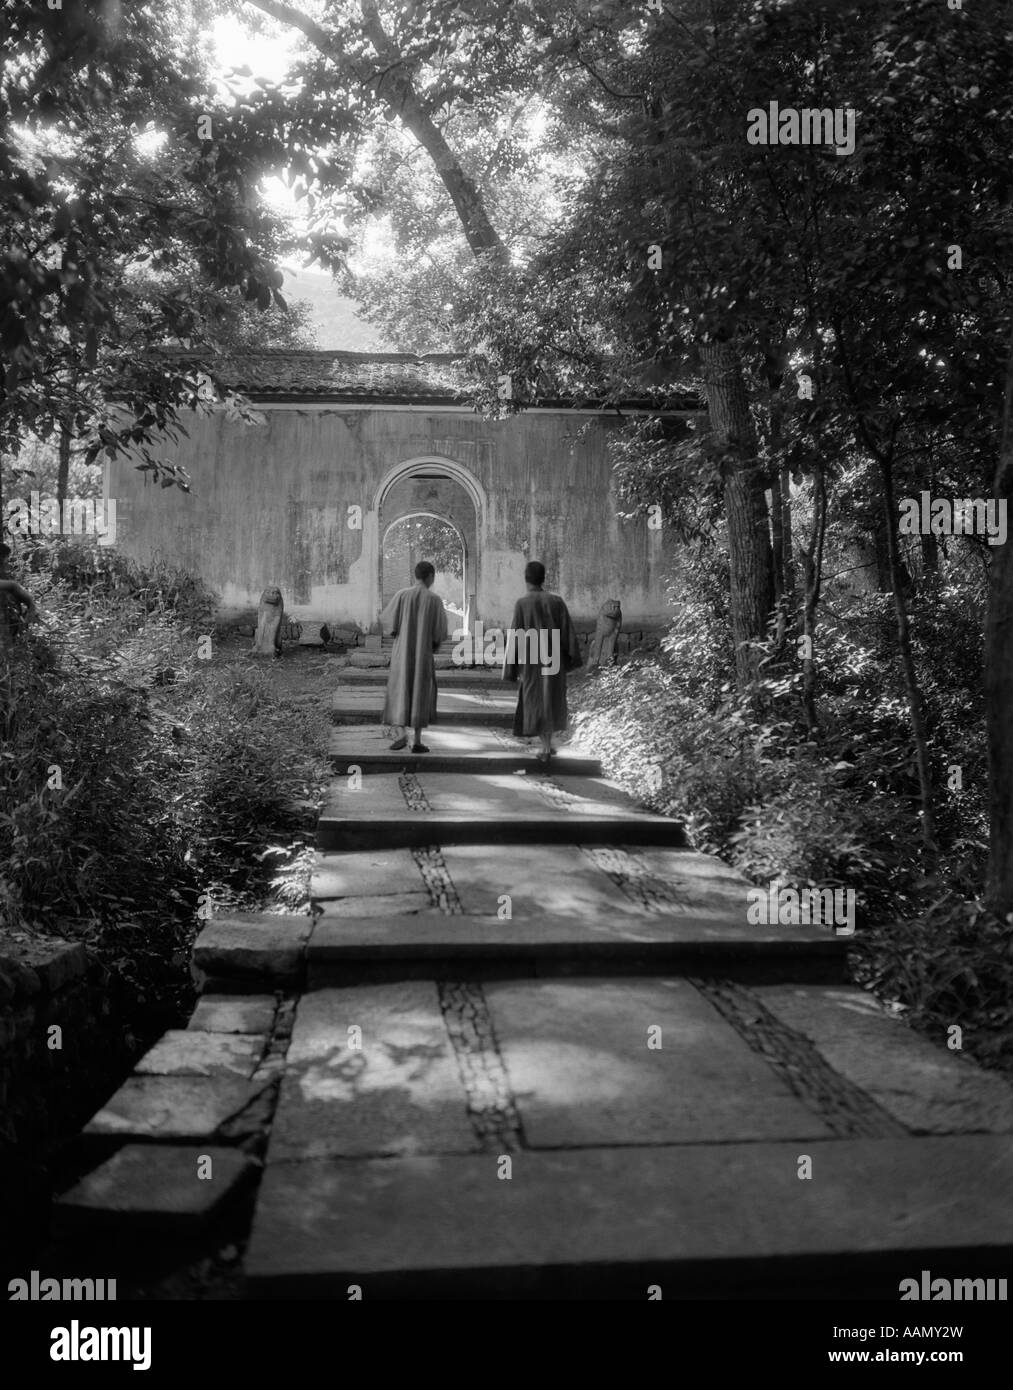 Seductive Chinese Garden Black And White Stock Photos  Images  Alamy With Licious S S Two Chinese Men In Robes Walking Up Quiet Garden Path  Stock  Image With Charming Morningside Community Garden Also The Botanic Gardens In Addition Garden Gates Manchester And Garden Rooms Images As Well As In The Night Garden Lyrics Additionally Hidden Gardens Anglesey From Alamycom With   Licious Chinese Garden Black And White Stock Photos  Images  Alamy With Charming S S Two Chinese Men In Robes Walking Up Quiet Garden Path  Stock  Image And Seductive Morningside Community Garden Also The Botanic Gardens In Addition Garden Gates Manchester From Alamycom